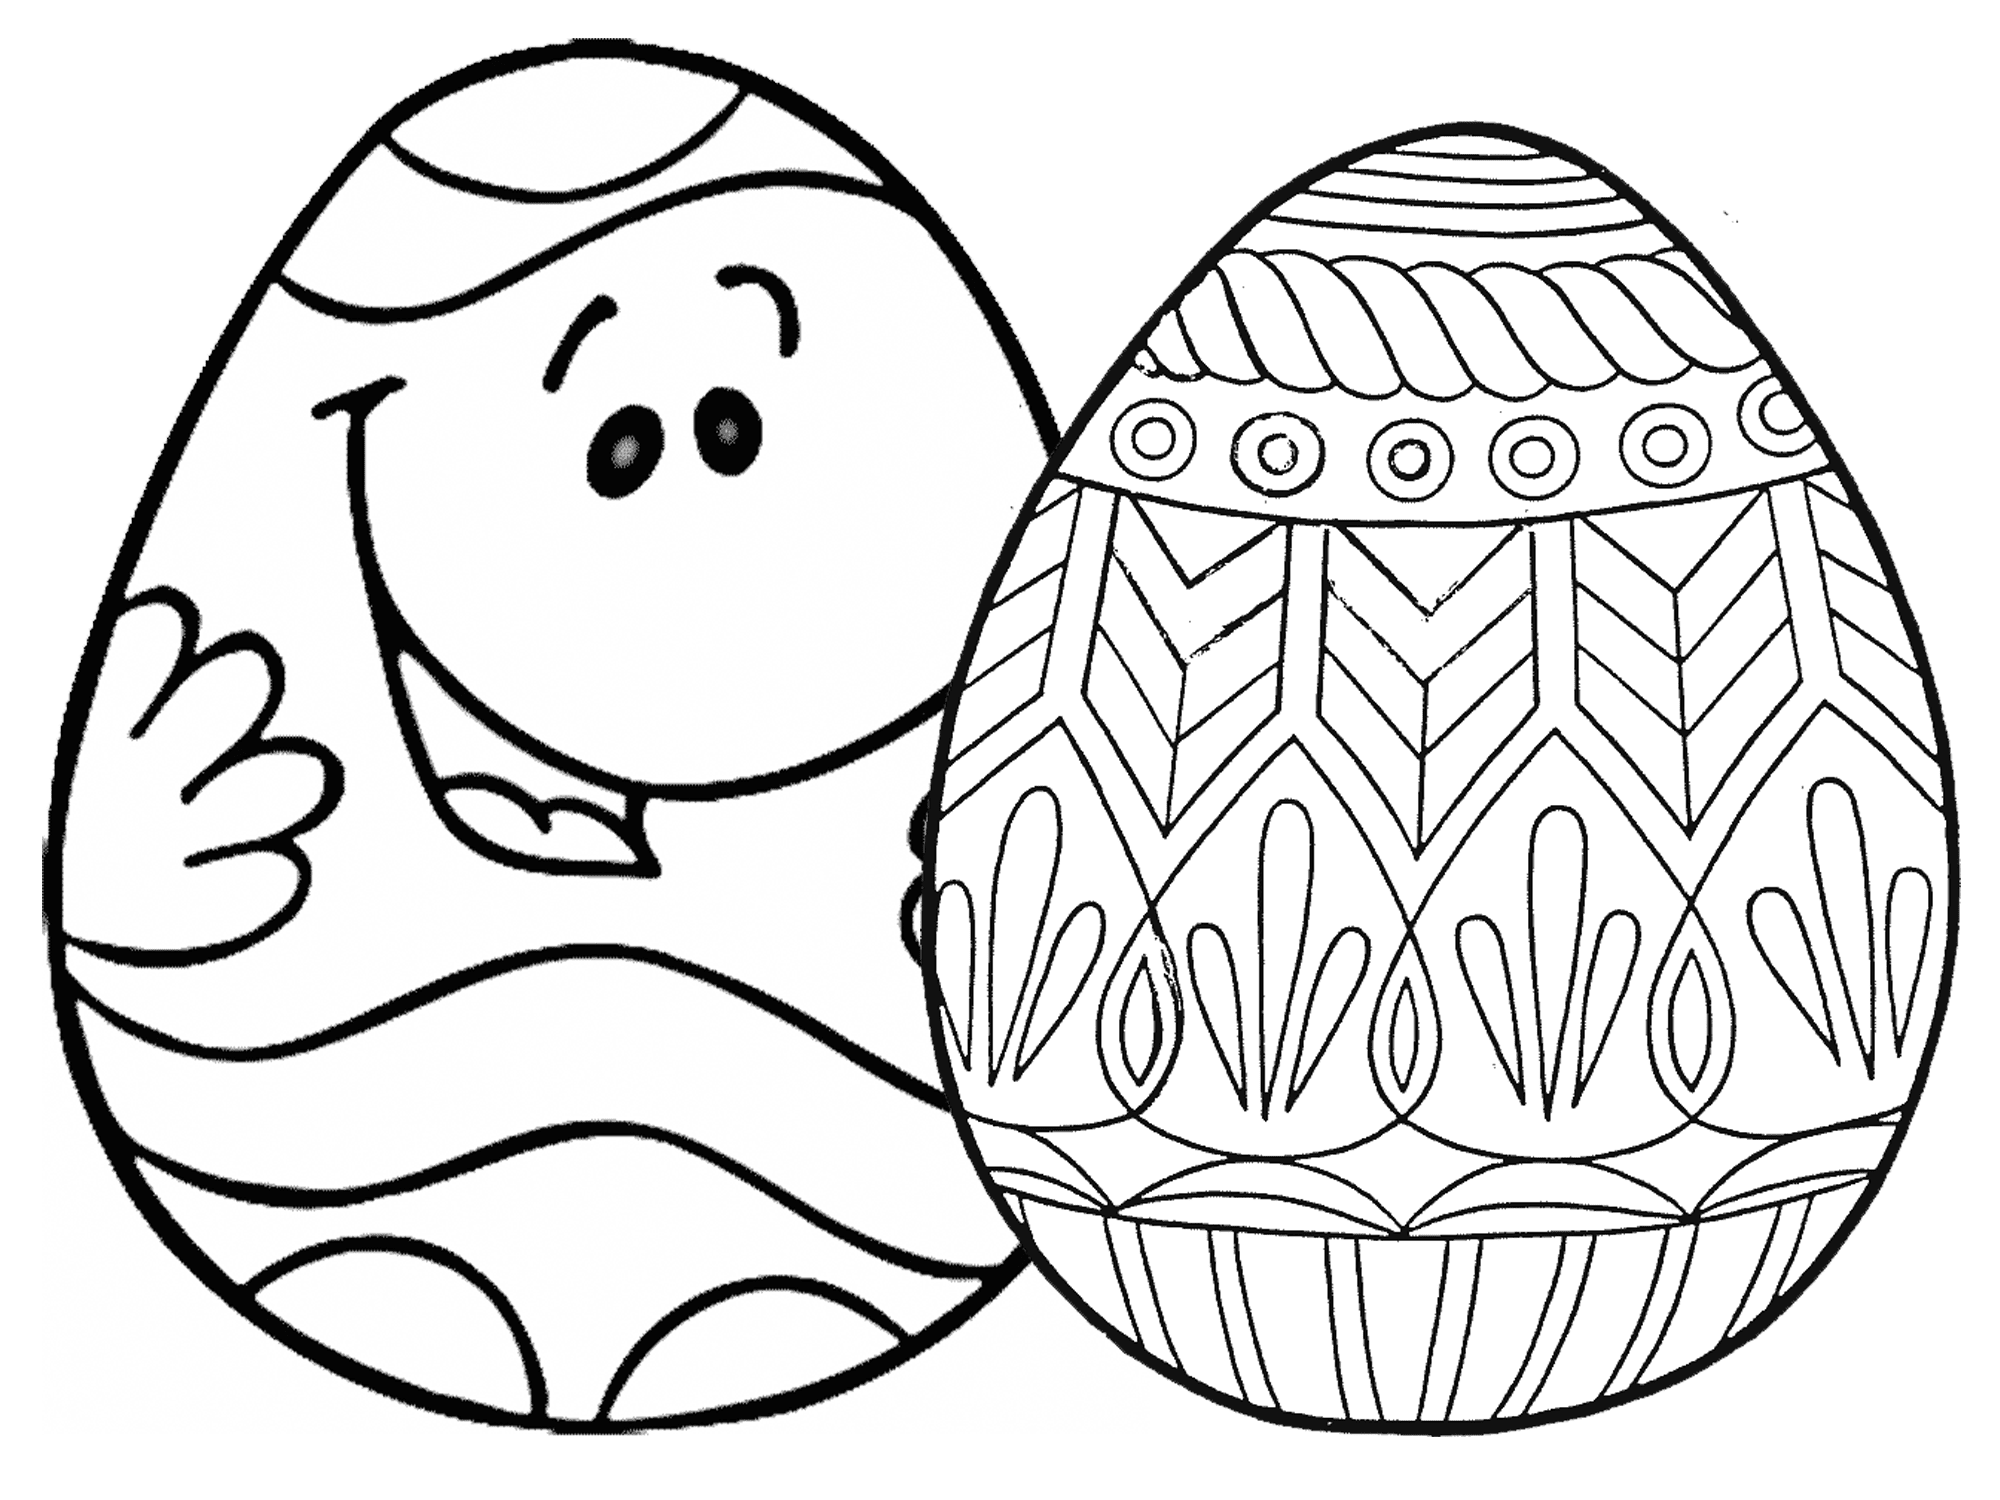 printable colouring pages of easter eggs printable easter egg coloring pages for kids cool2bkids colouring easter of pages eggs printable